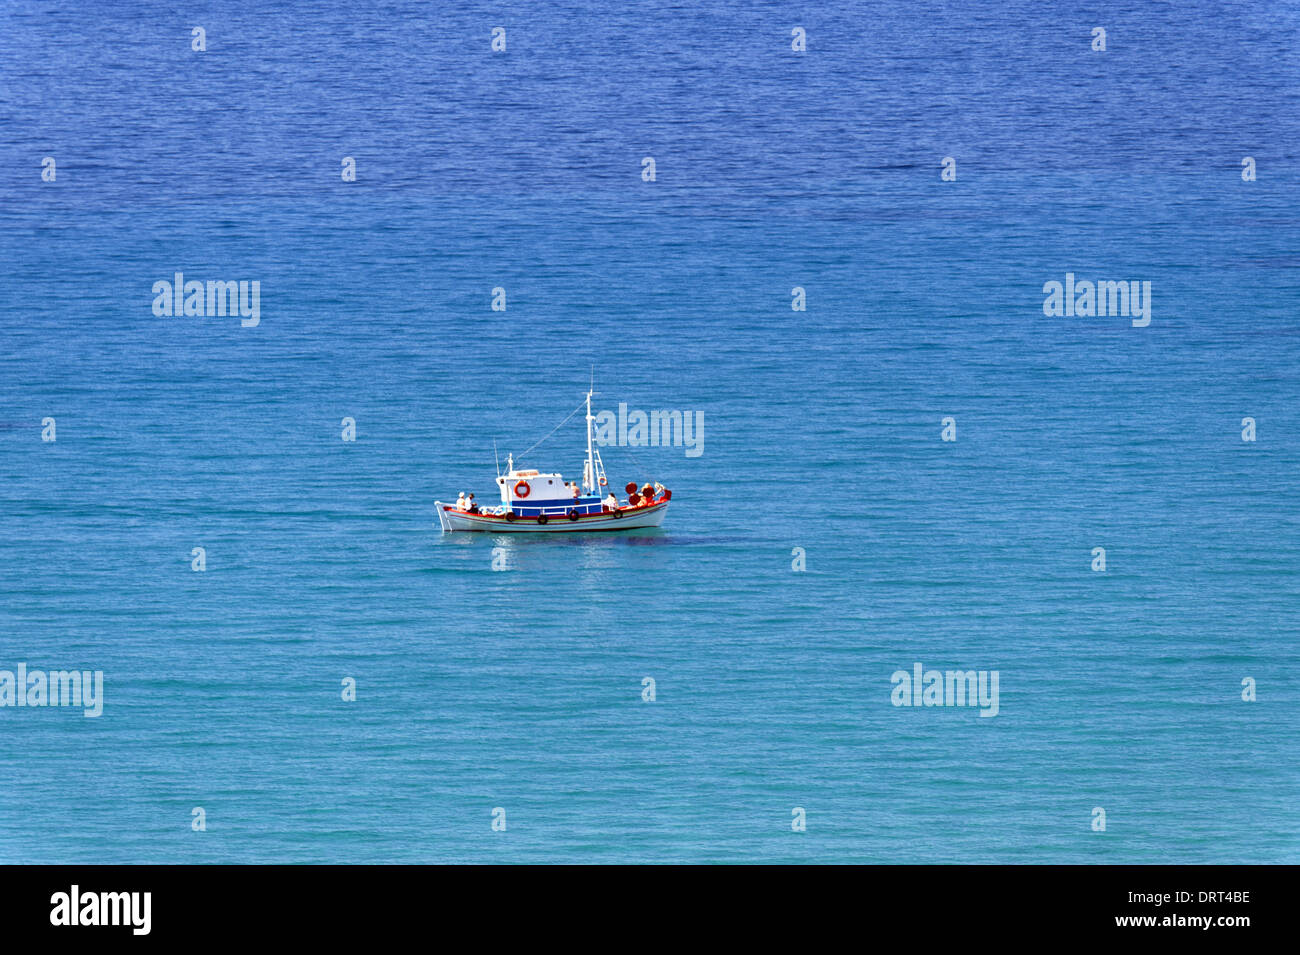 Boat in the aegean - Stock Image